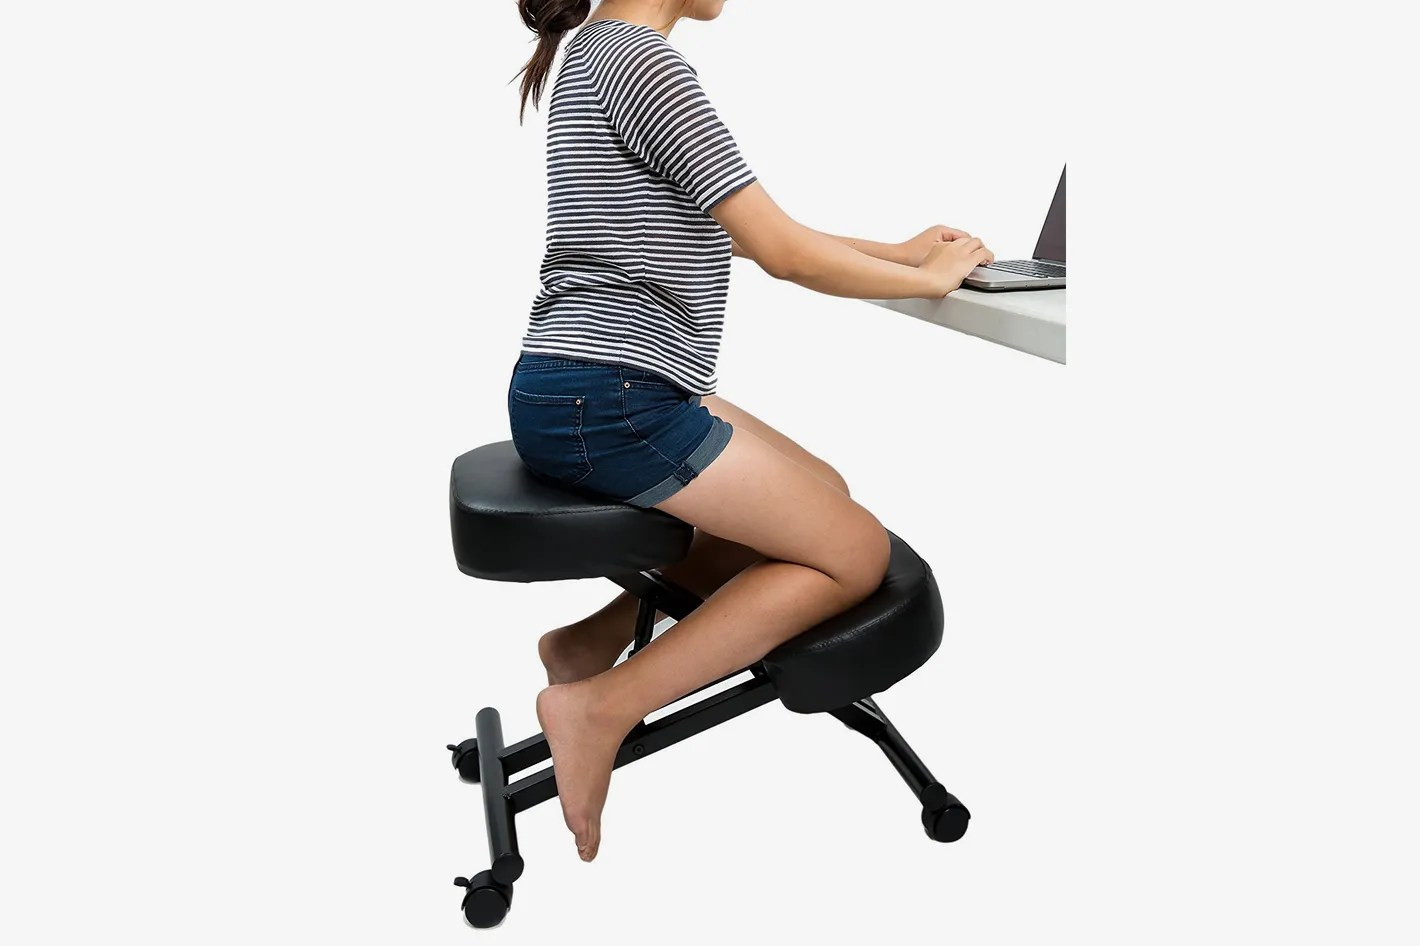 Ergonomic Chair Ergonomic Desk Chair W Chair The Truly Ergonomic Desk